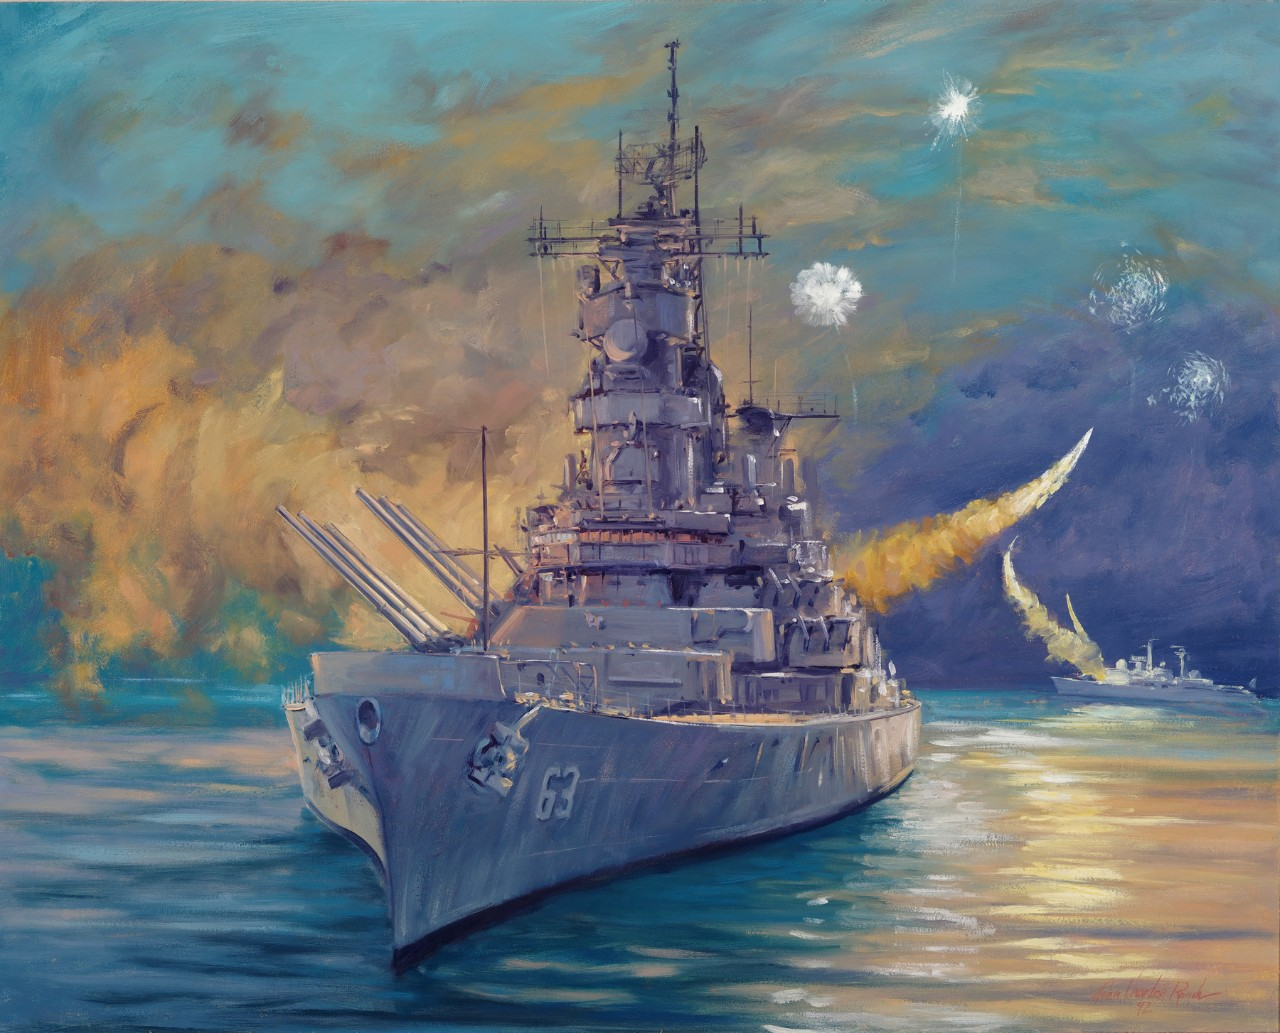 A battleship at night with missiles streaking through the sky